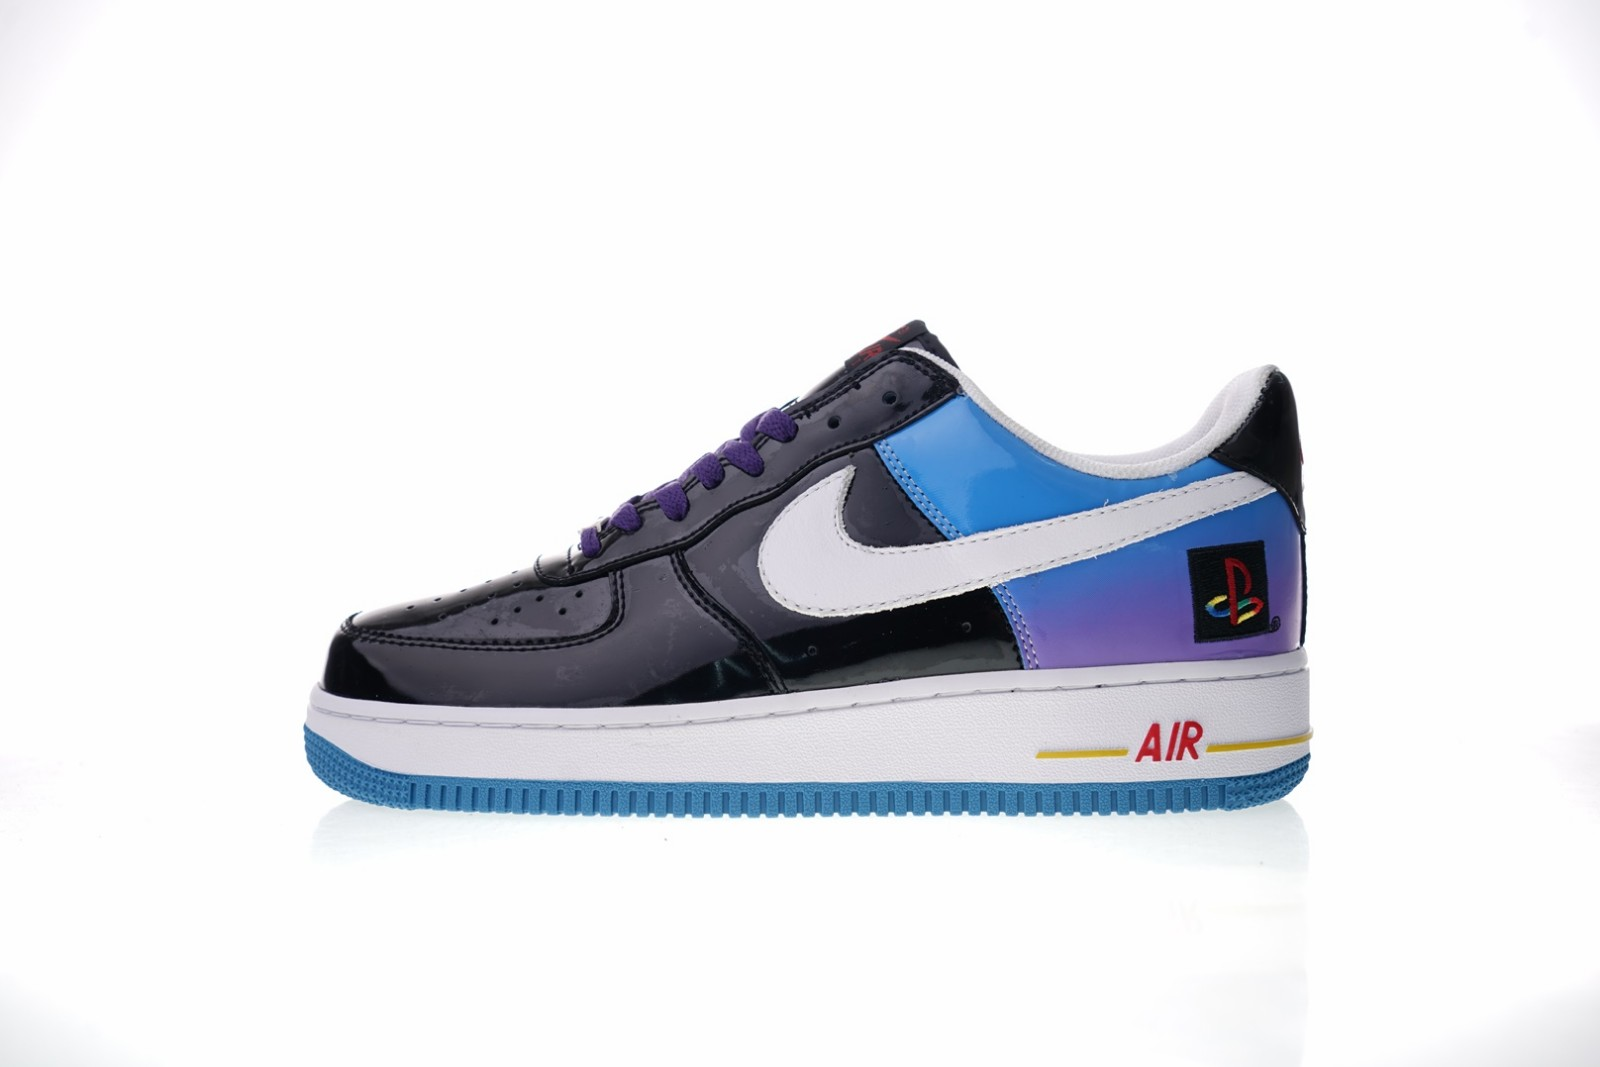 Prev Nike Air Force 1 Low Playstation Black Blue White Purple Varsity Red  ... 17fe89ca0